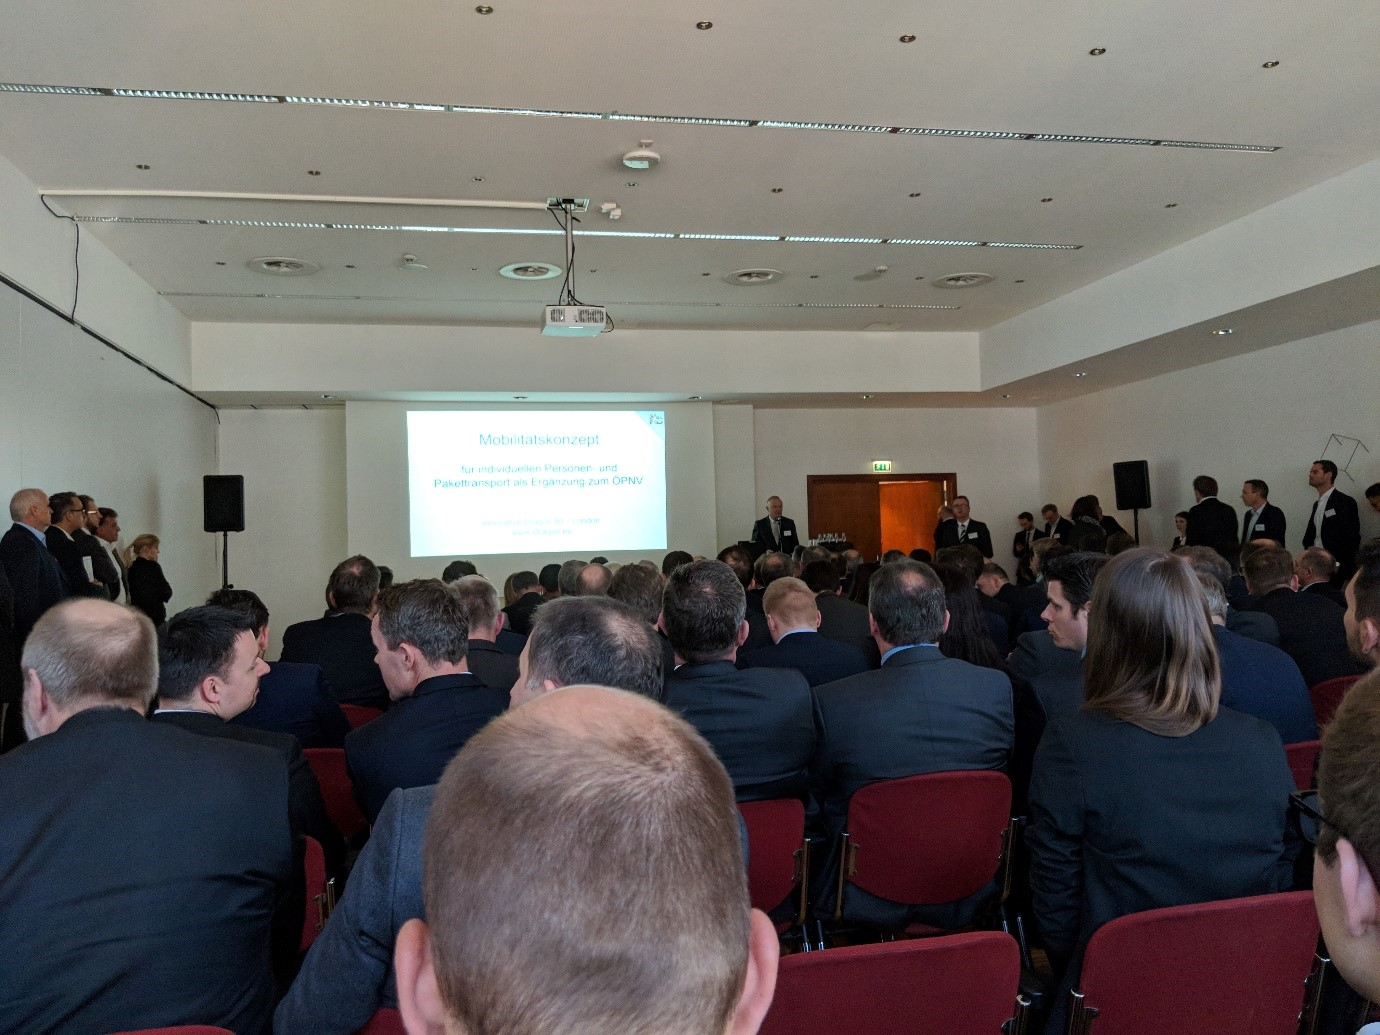 Presentation of the FLAIT-concept by Herwig Fischer in the crowded Room II